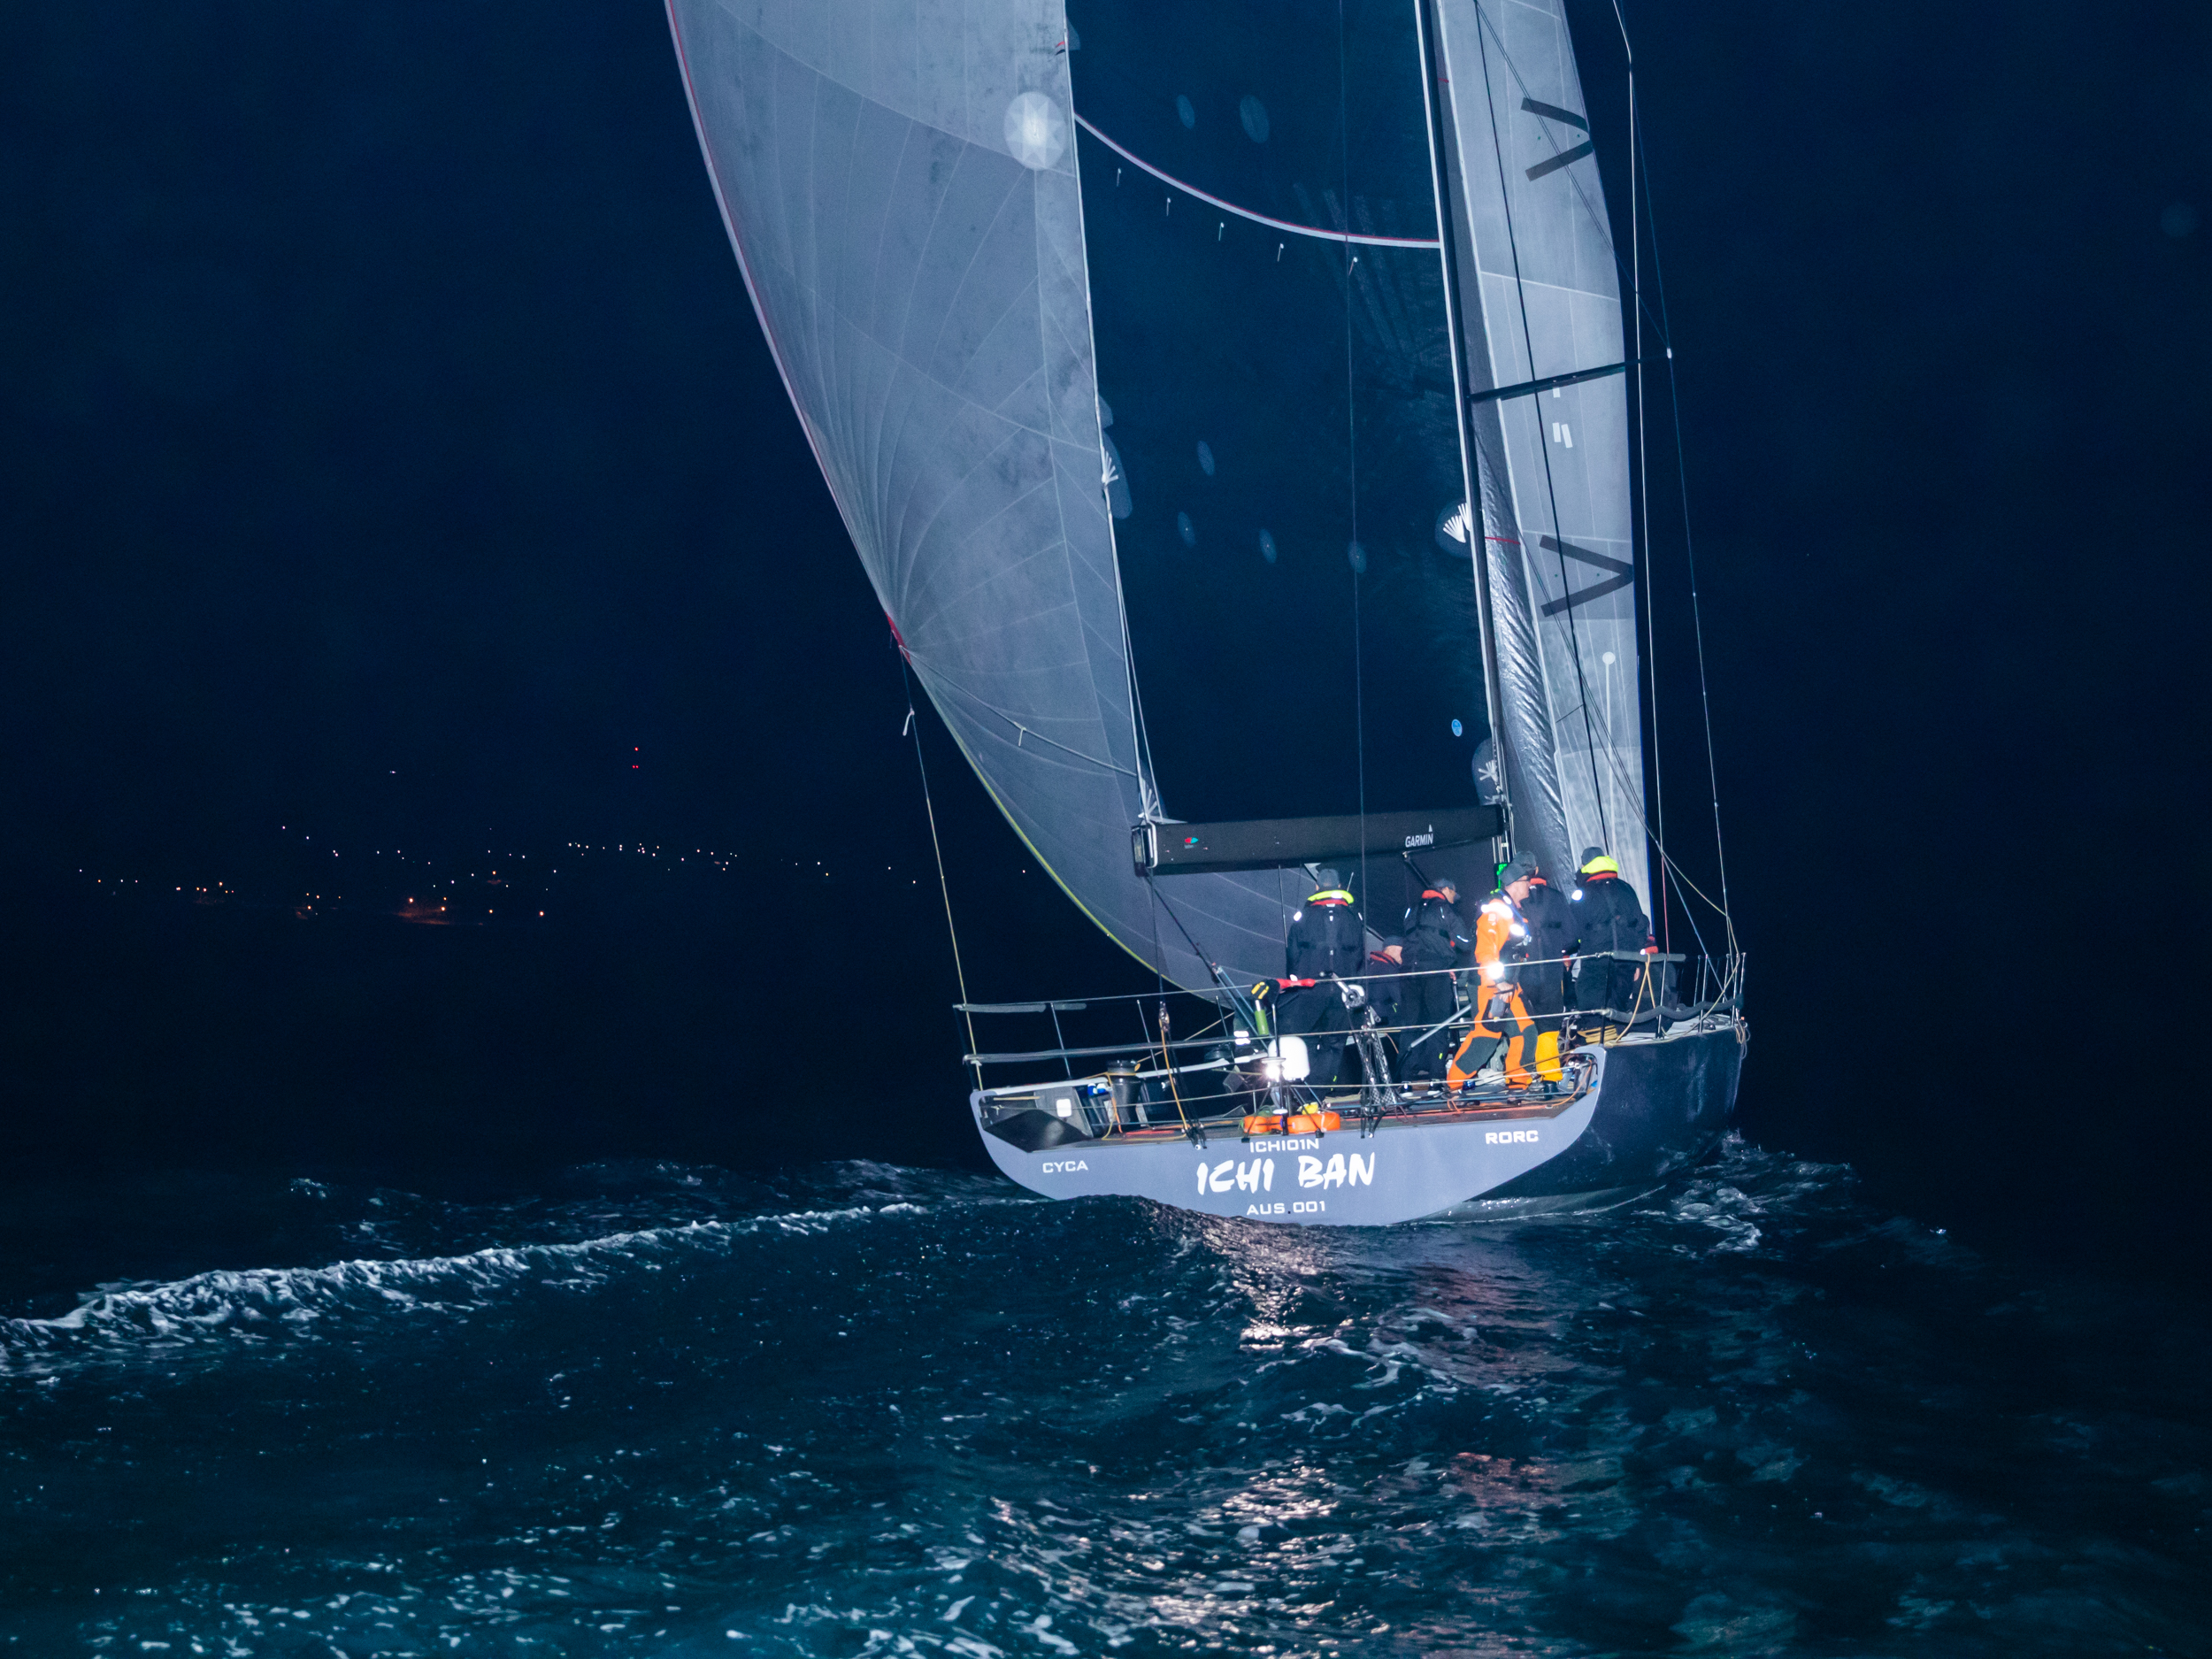 Ichi Ban sails into Port Lincoln in the dead of night - Take 2 pic